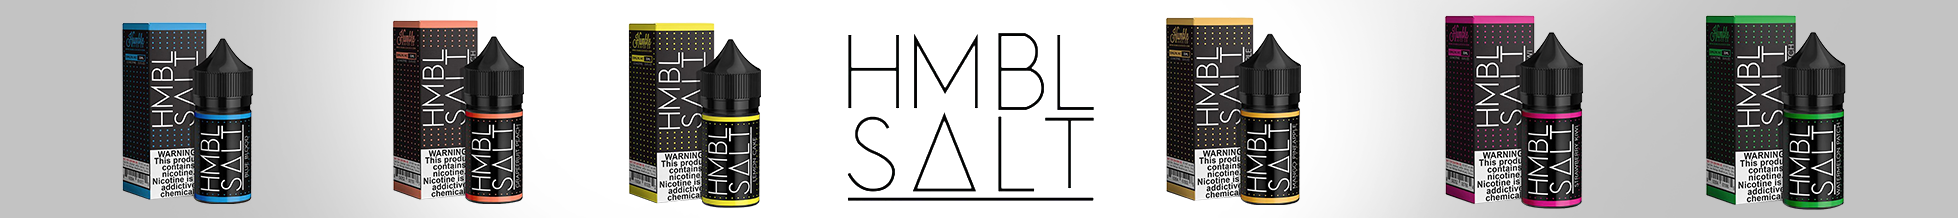 humble-salt-category-banner.png